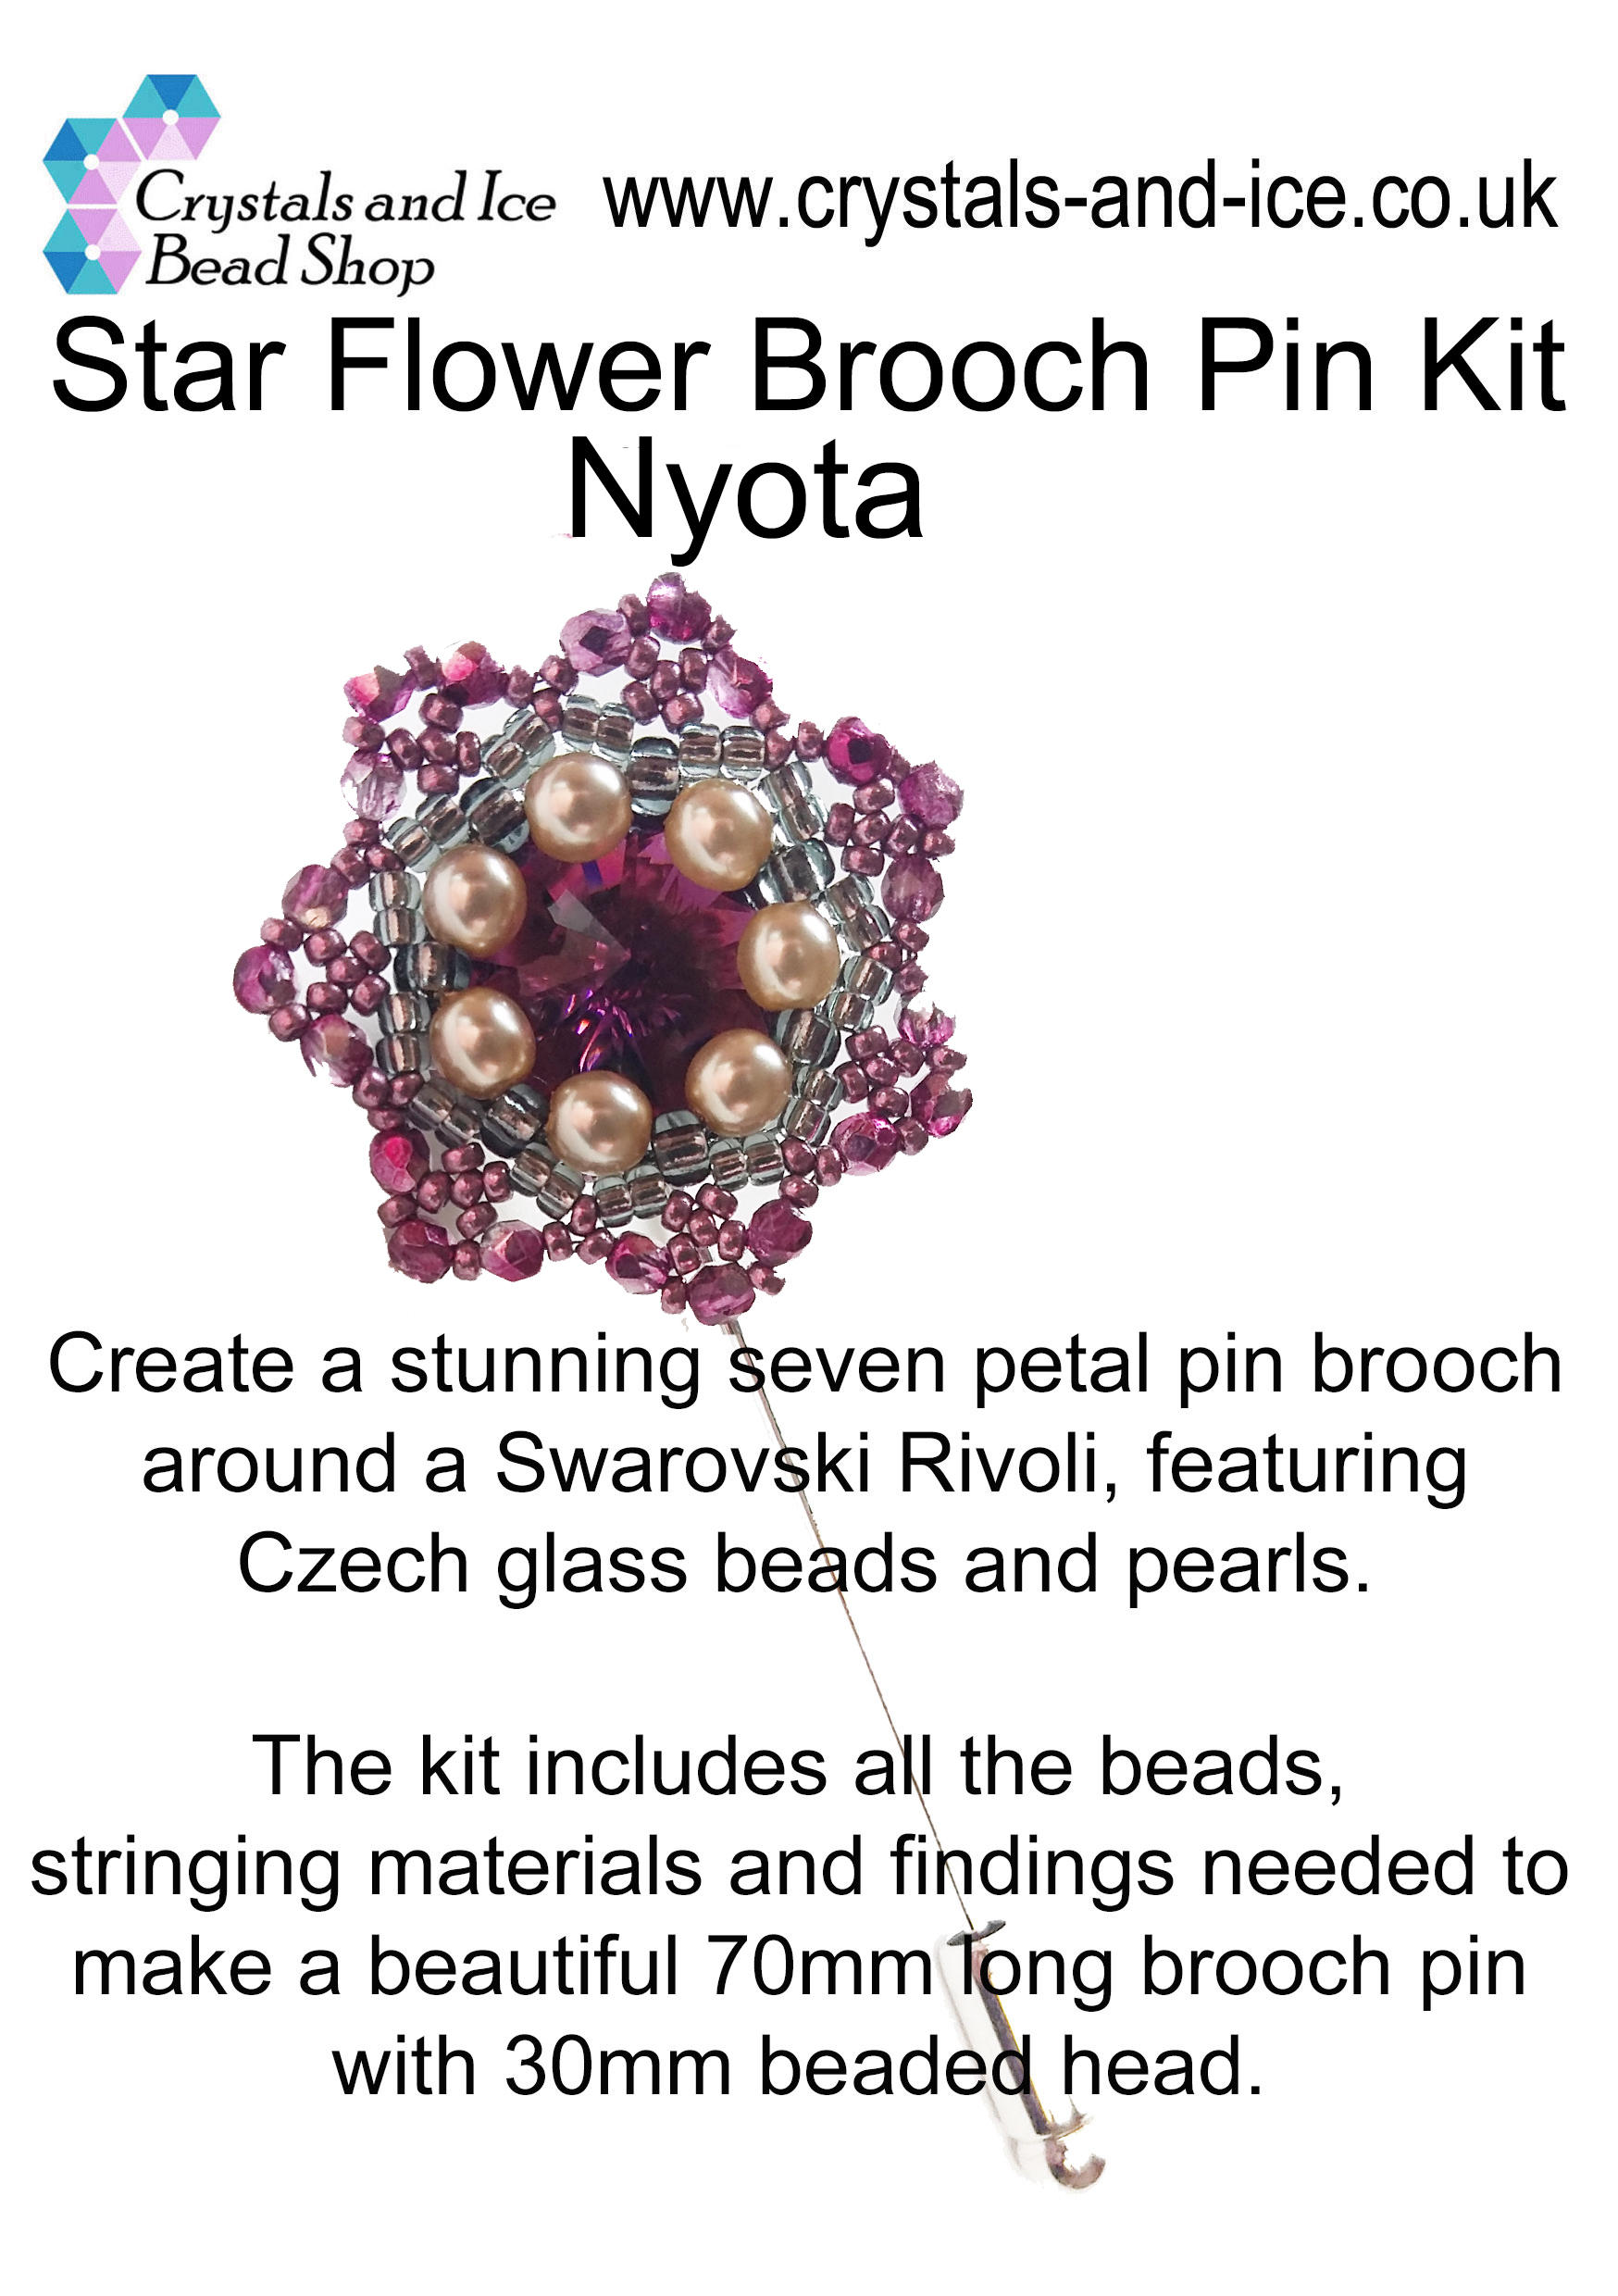 Star Flower Brooch Pin Kit - Nyota